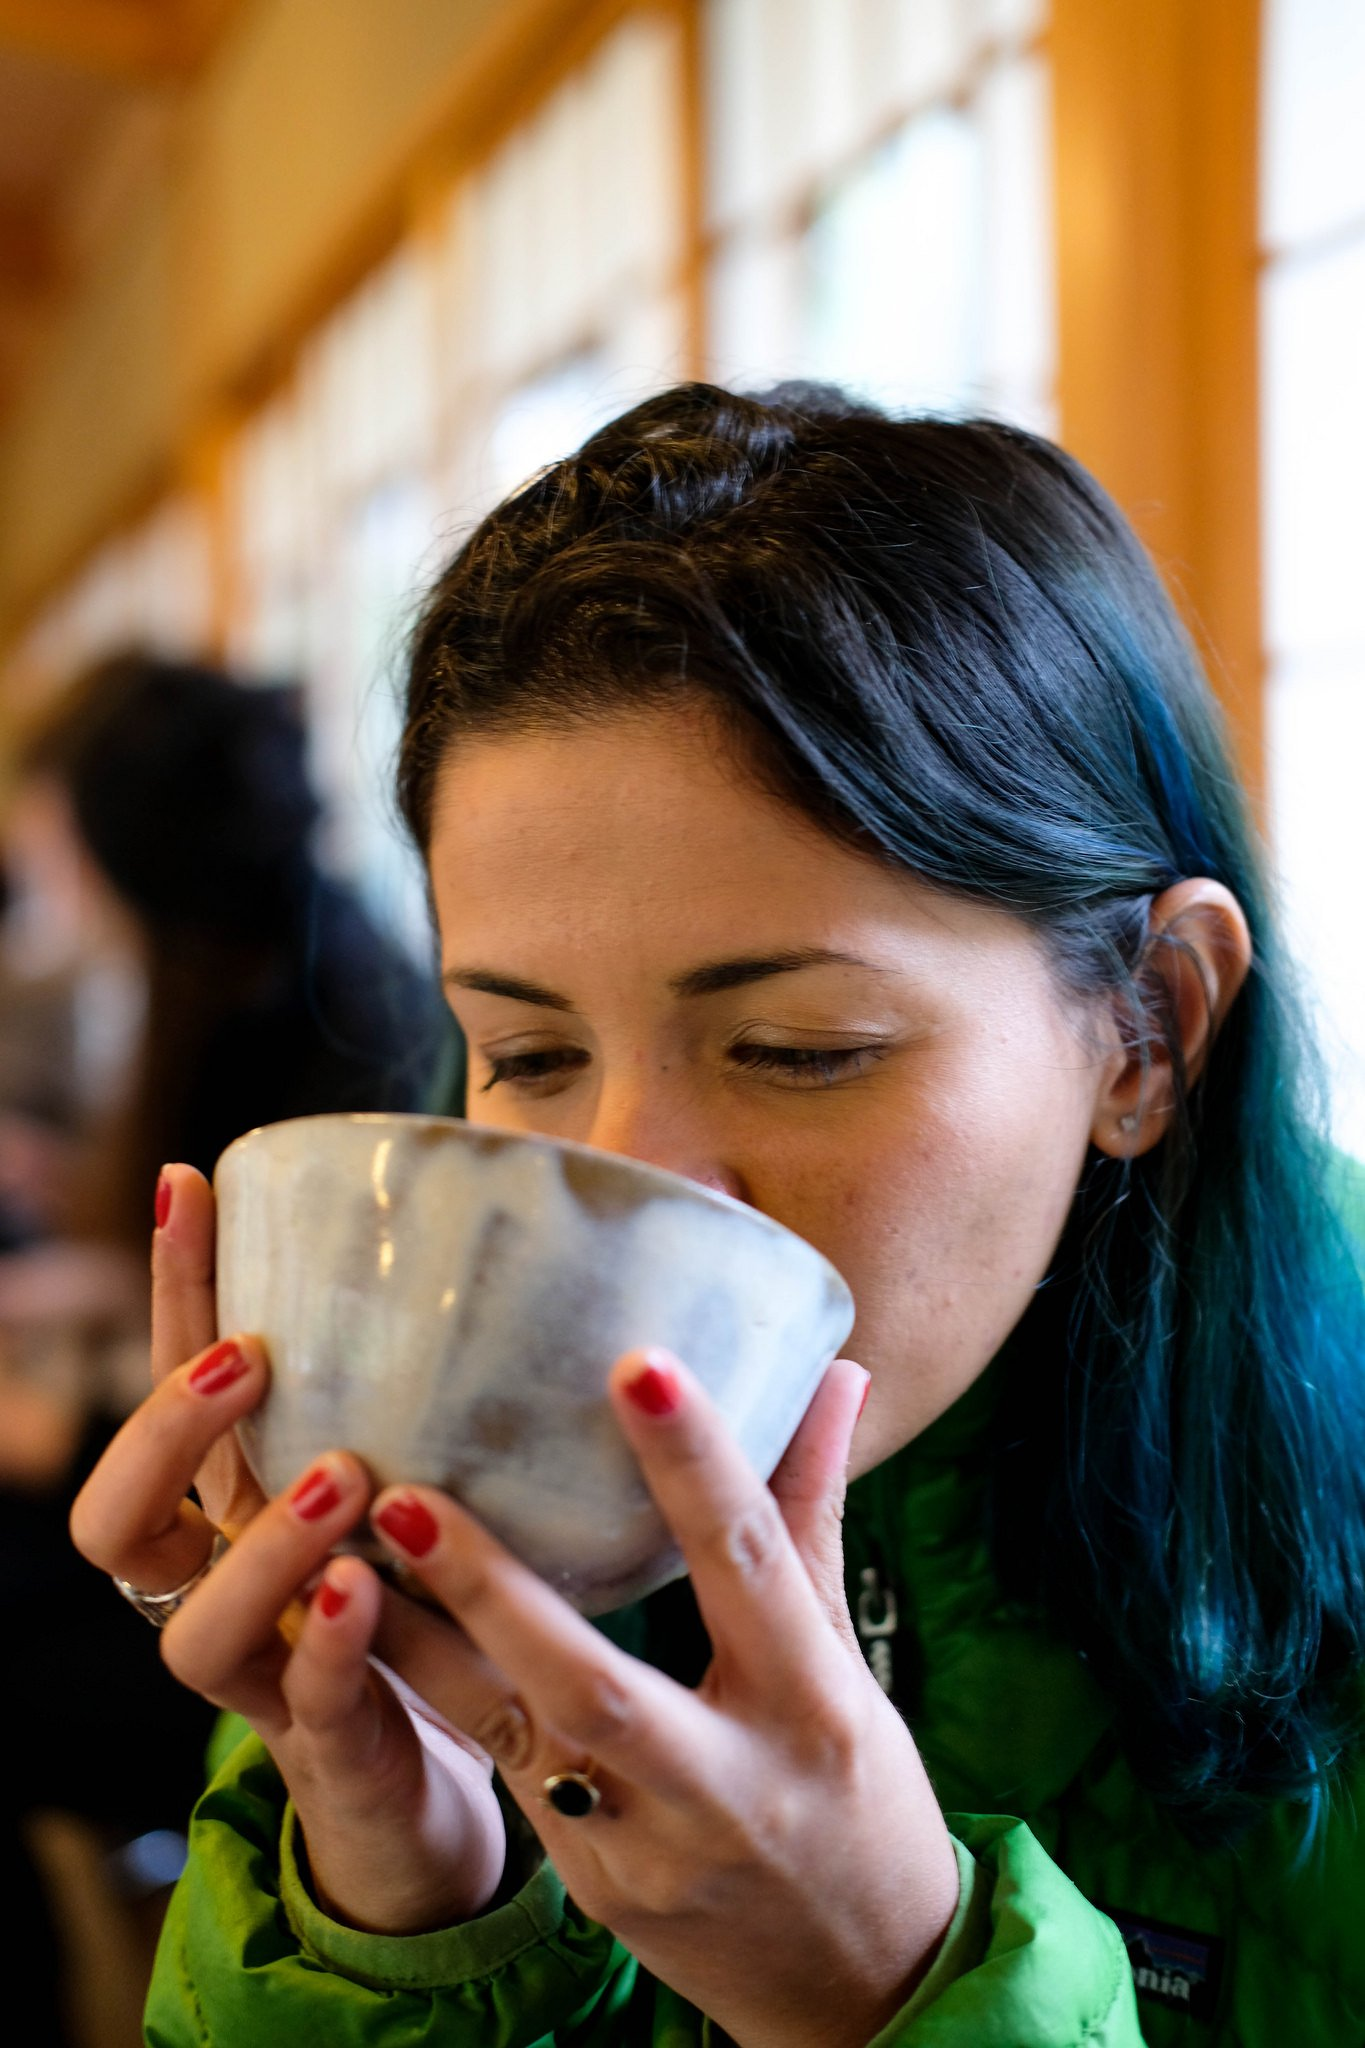 Research Reveals Healthiest Green Tea on the Planet - Flickr Foto Serge - flic.kr/p/TyGA